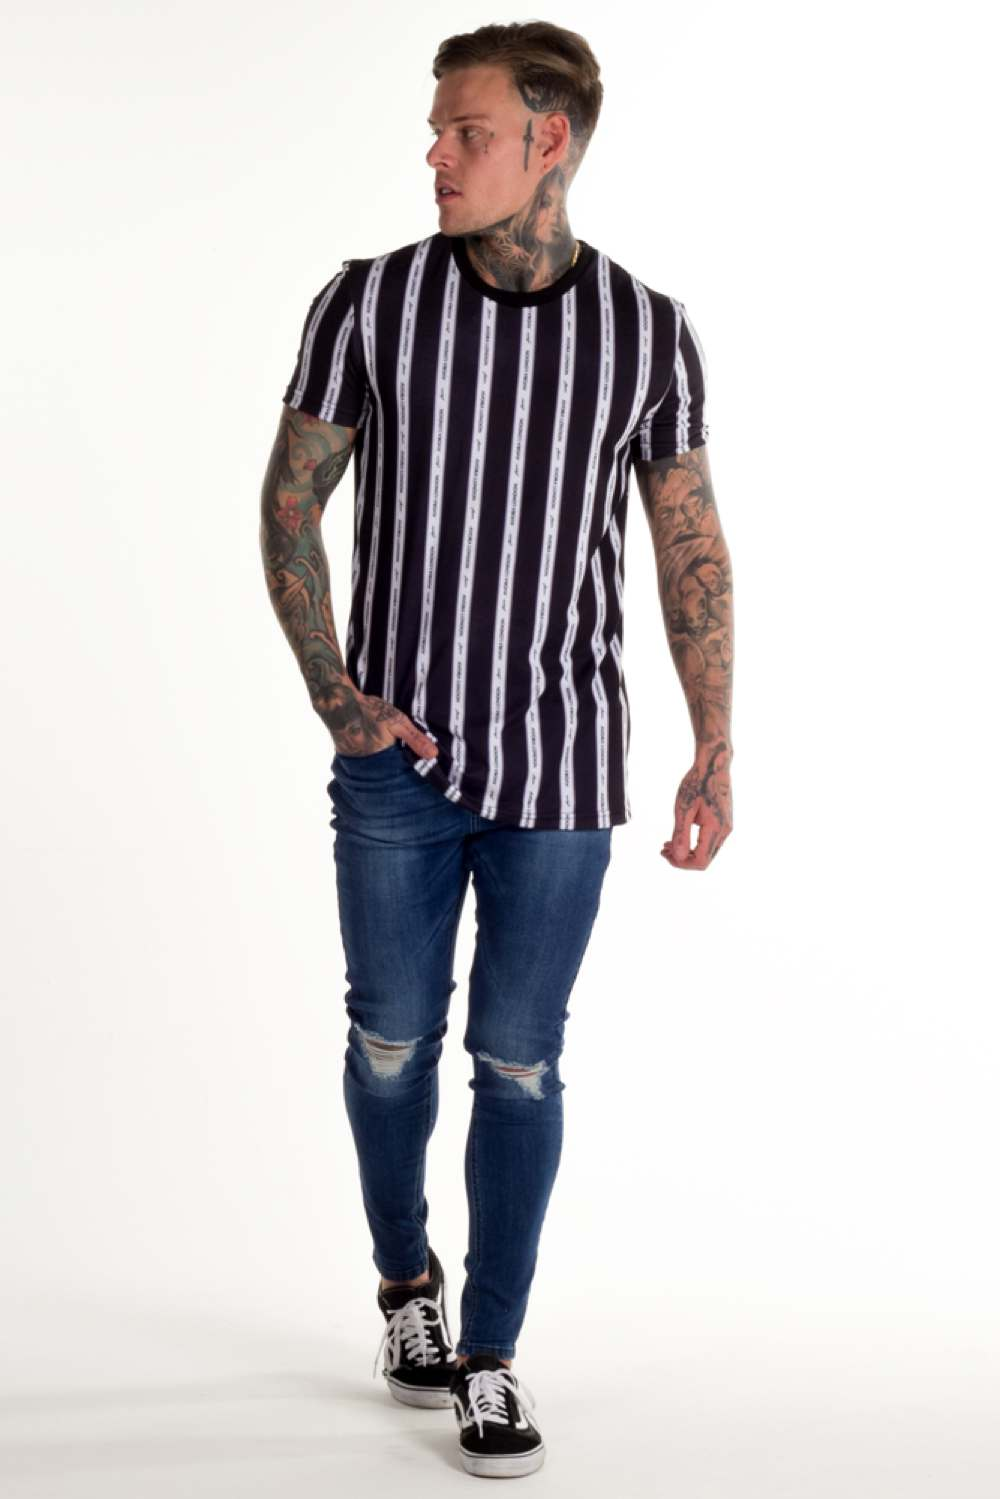 Avora London Blake Striped T-Shirt - Navy - 1